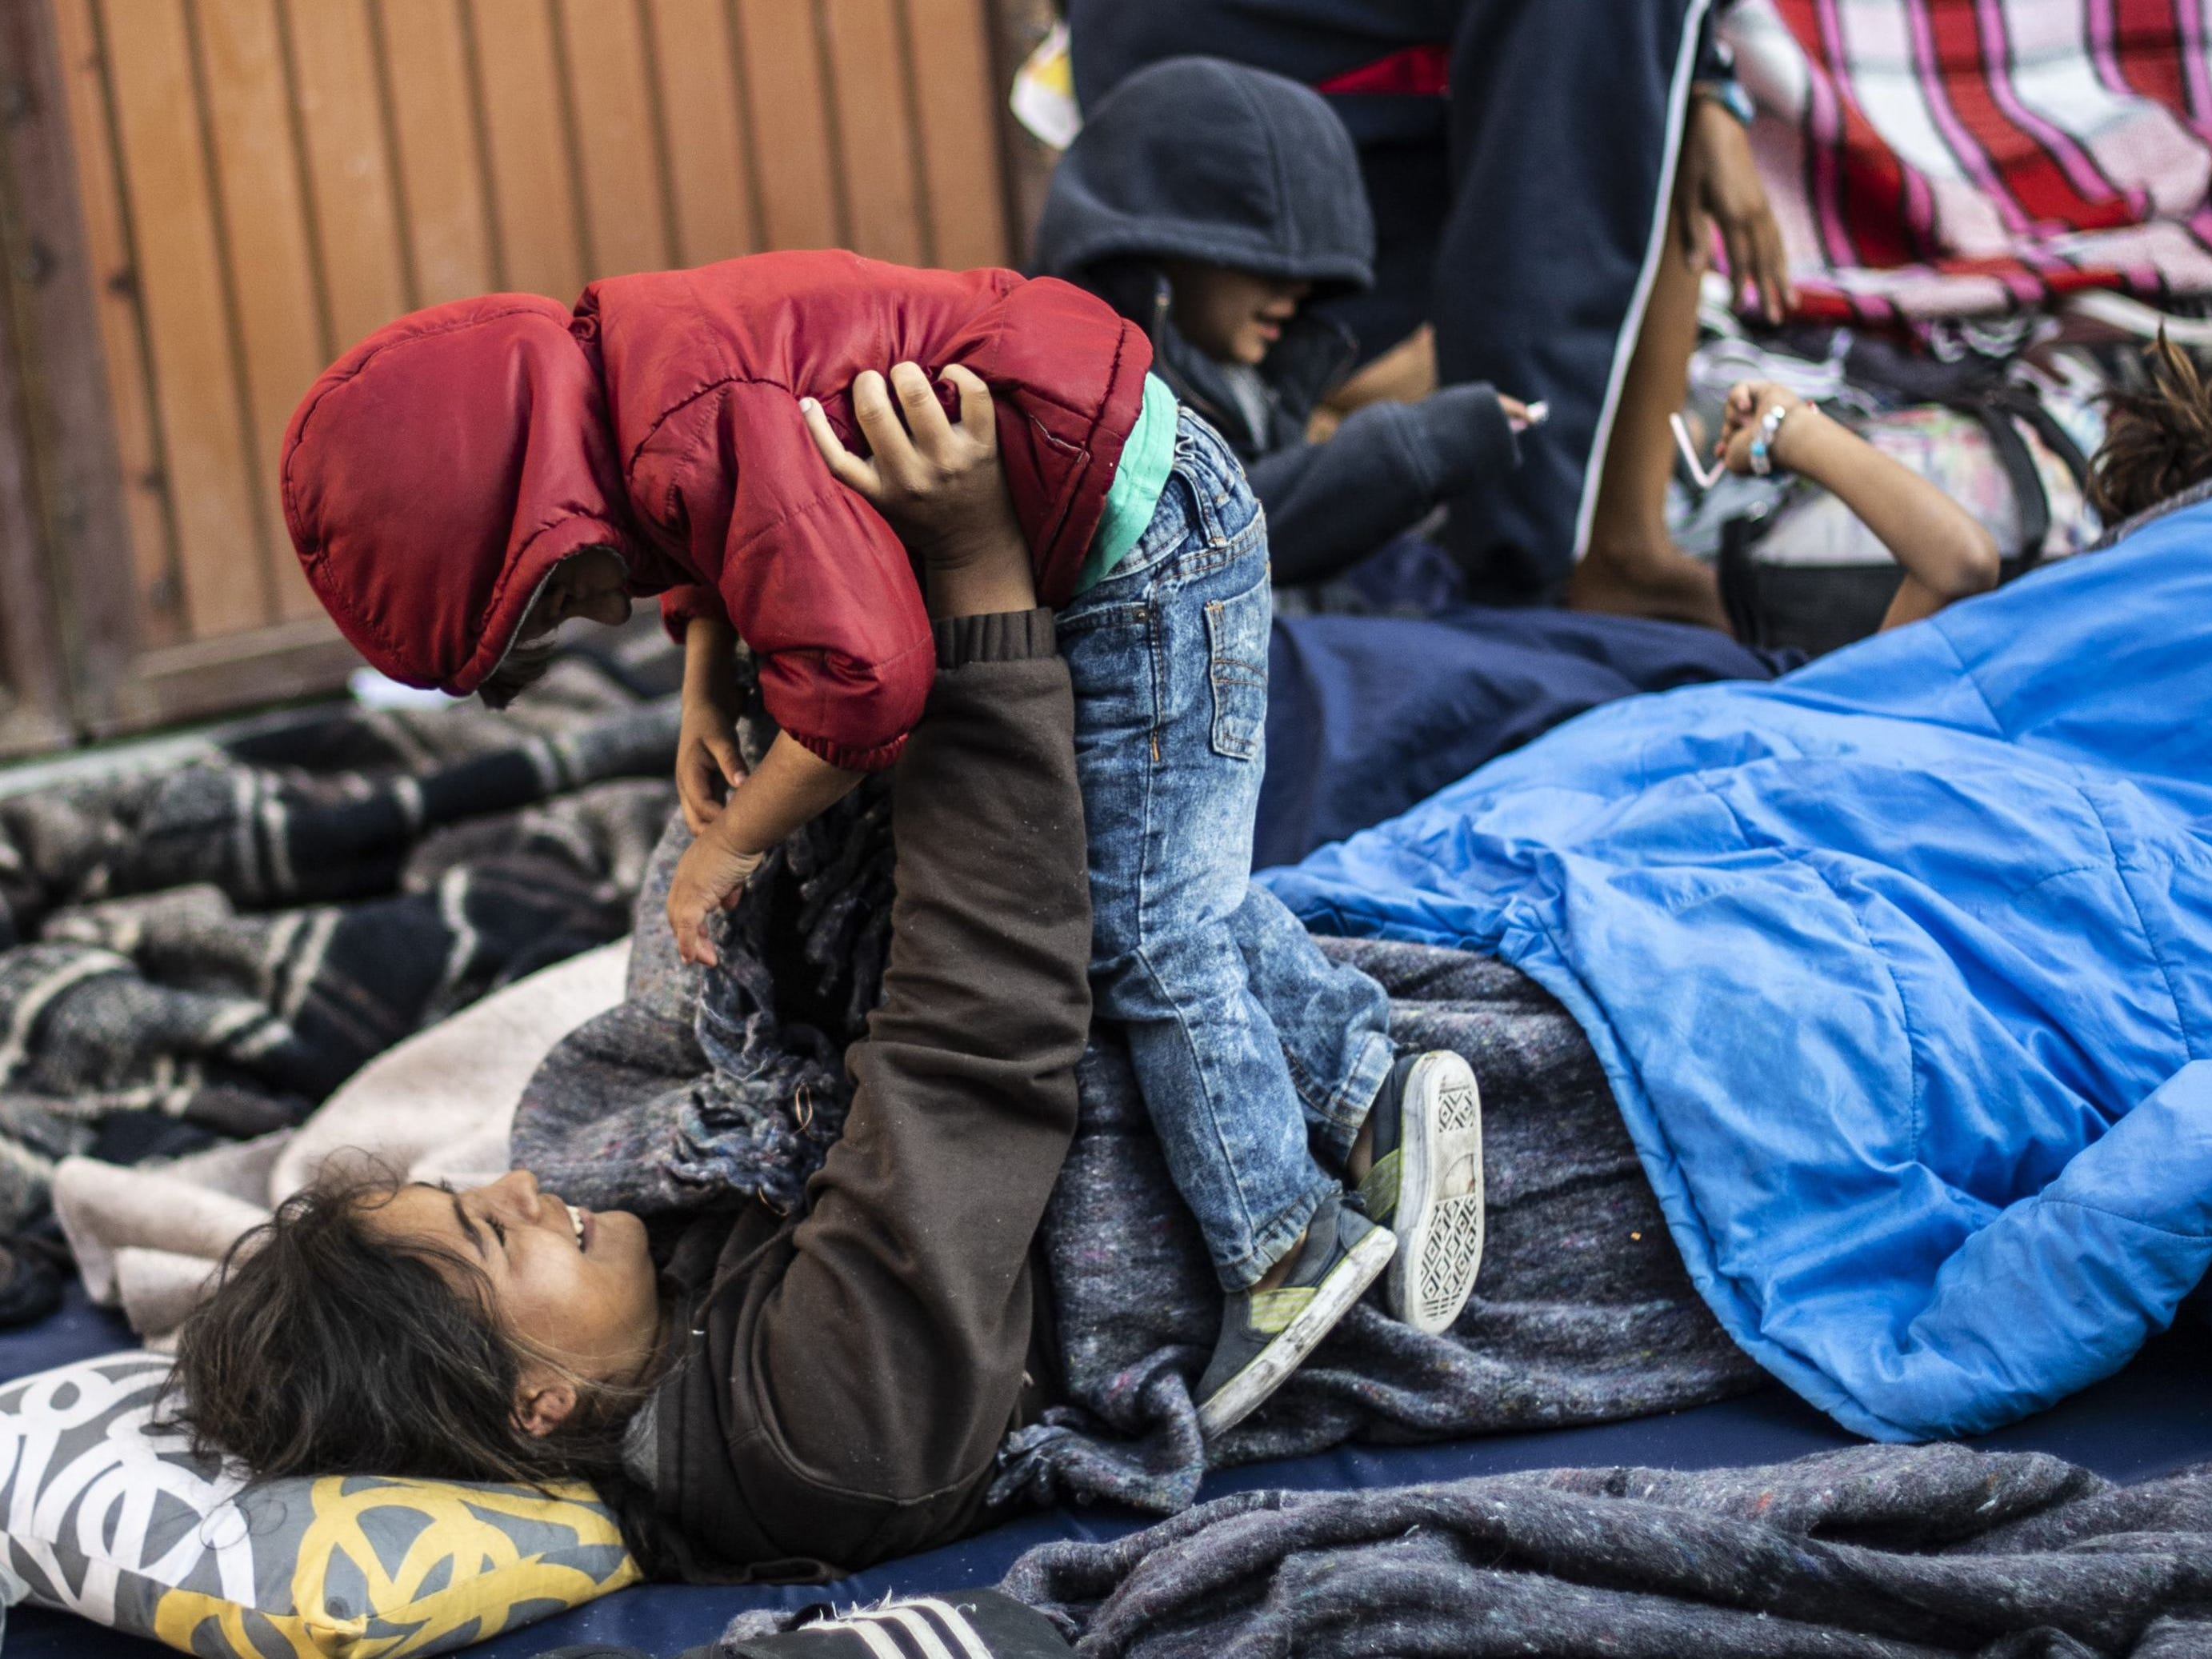 A Central American migrant woman moving towards the United States in hopes of a better life, plays with a child at the Alfa y Omega shelter in Mexicali, Baja California state, Mexico, on Nov. 17, 2018.